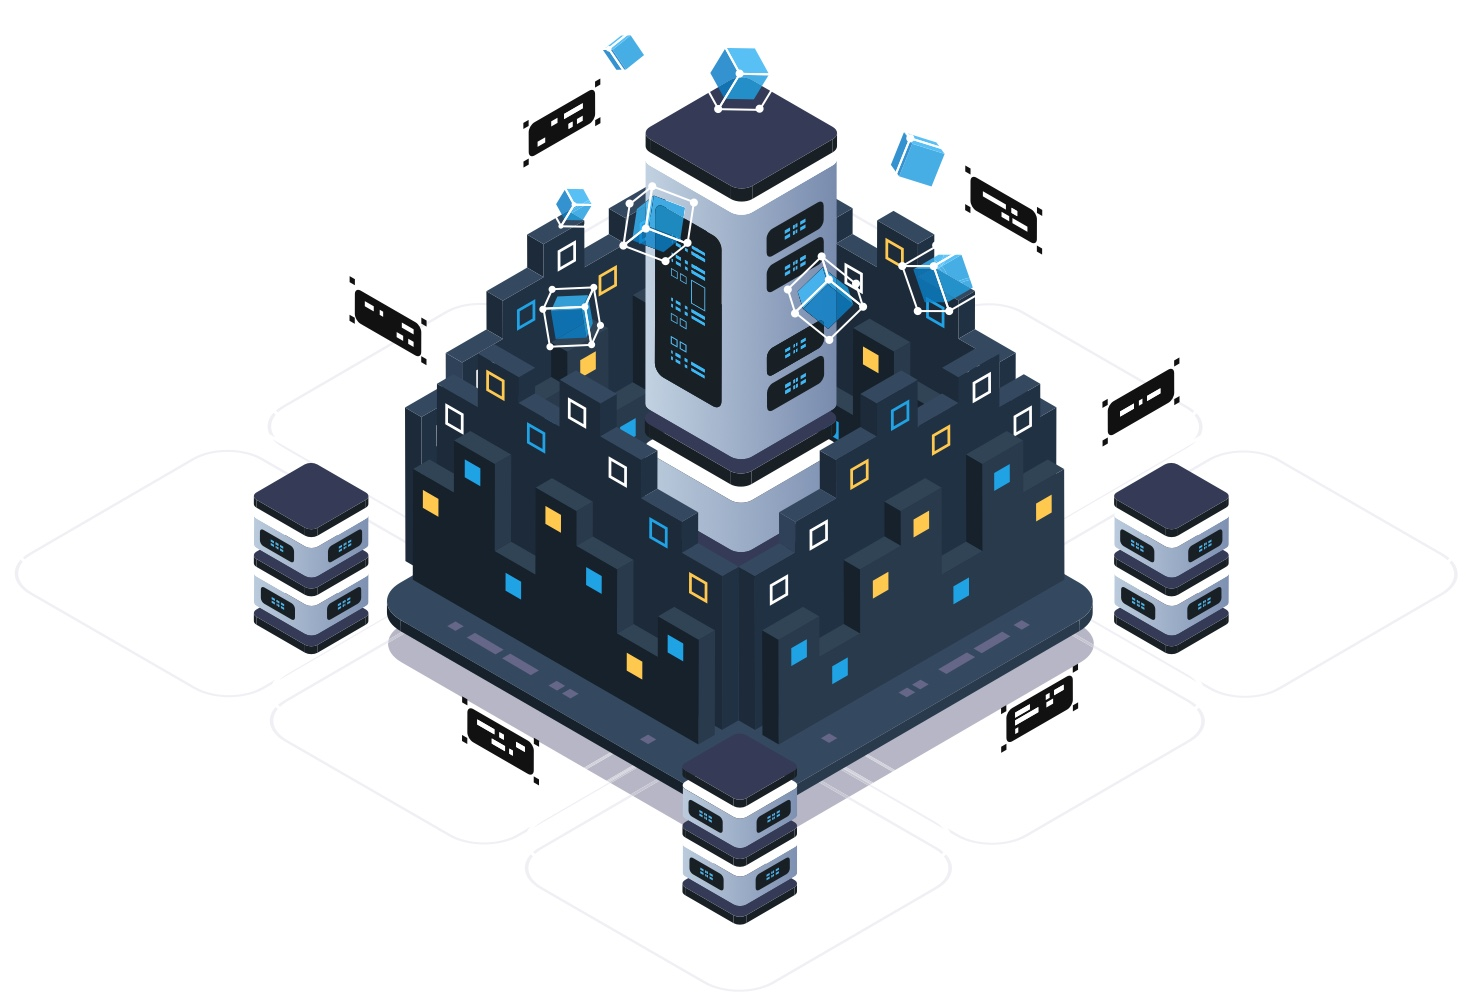 Container Cluster